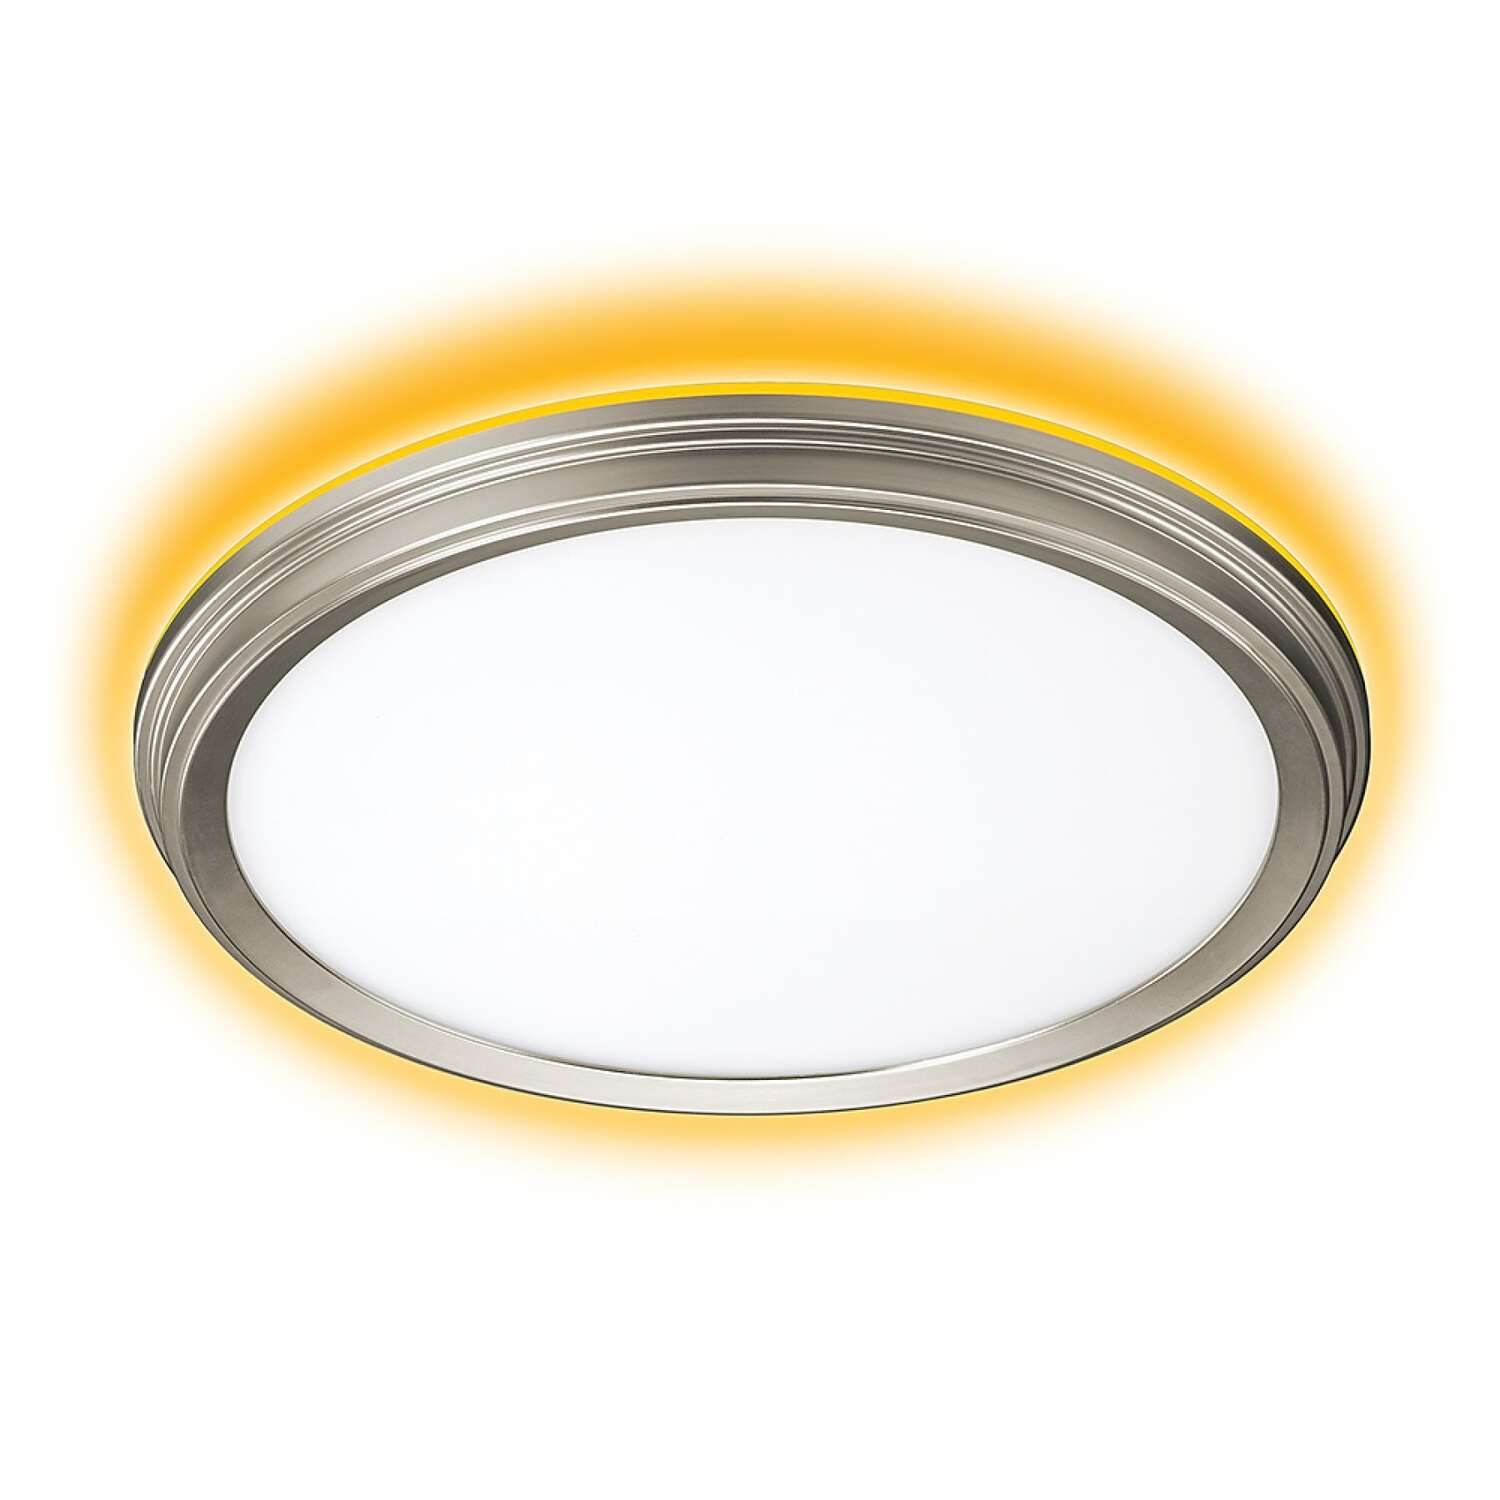 ETI  NIGHTLIGHTR  1.7 in. H x 11 in. W x 11 in. L Brushed Nickel  White  LED Ceiling Light Fixture w